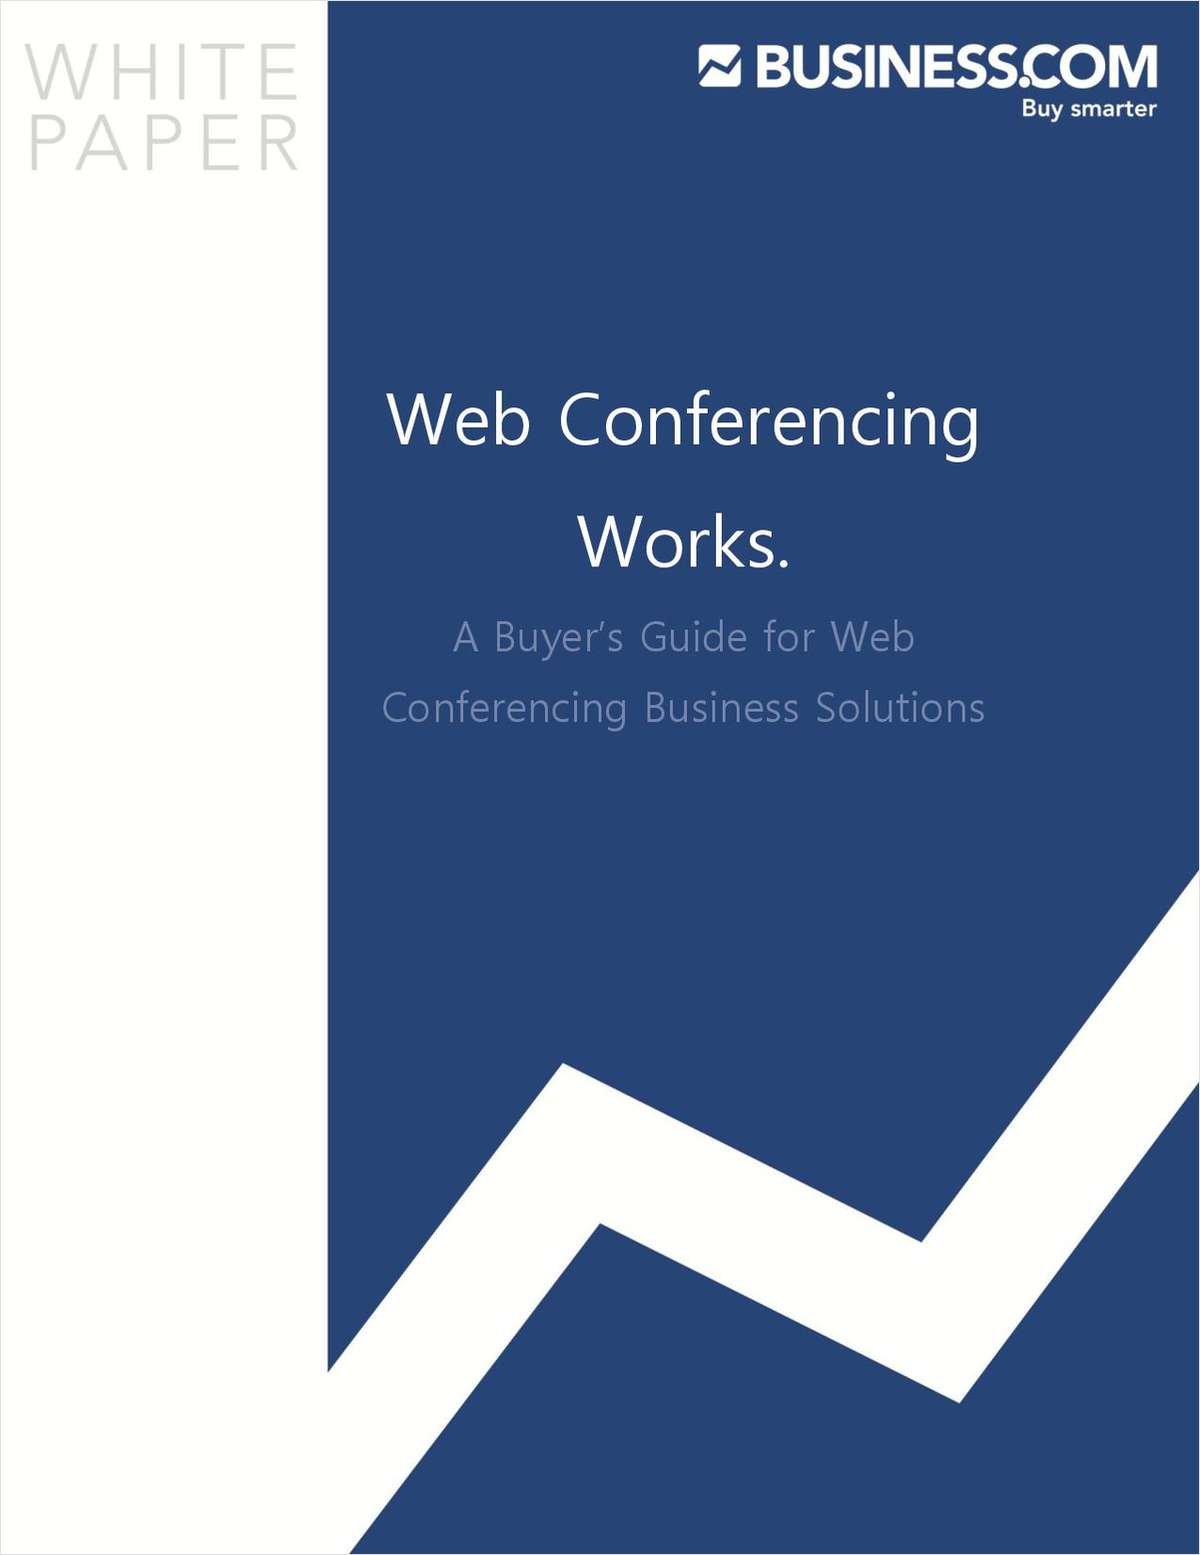 How Web Conferencing Can Significantly Cut Travel Expenses While Increasing Revenues